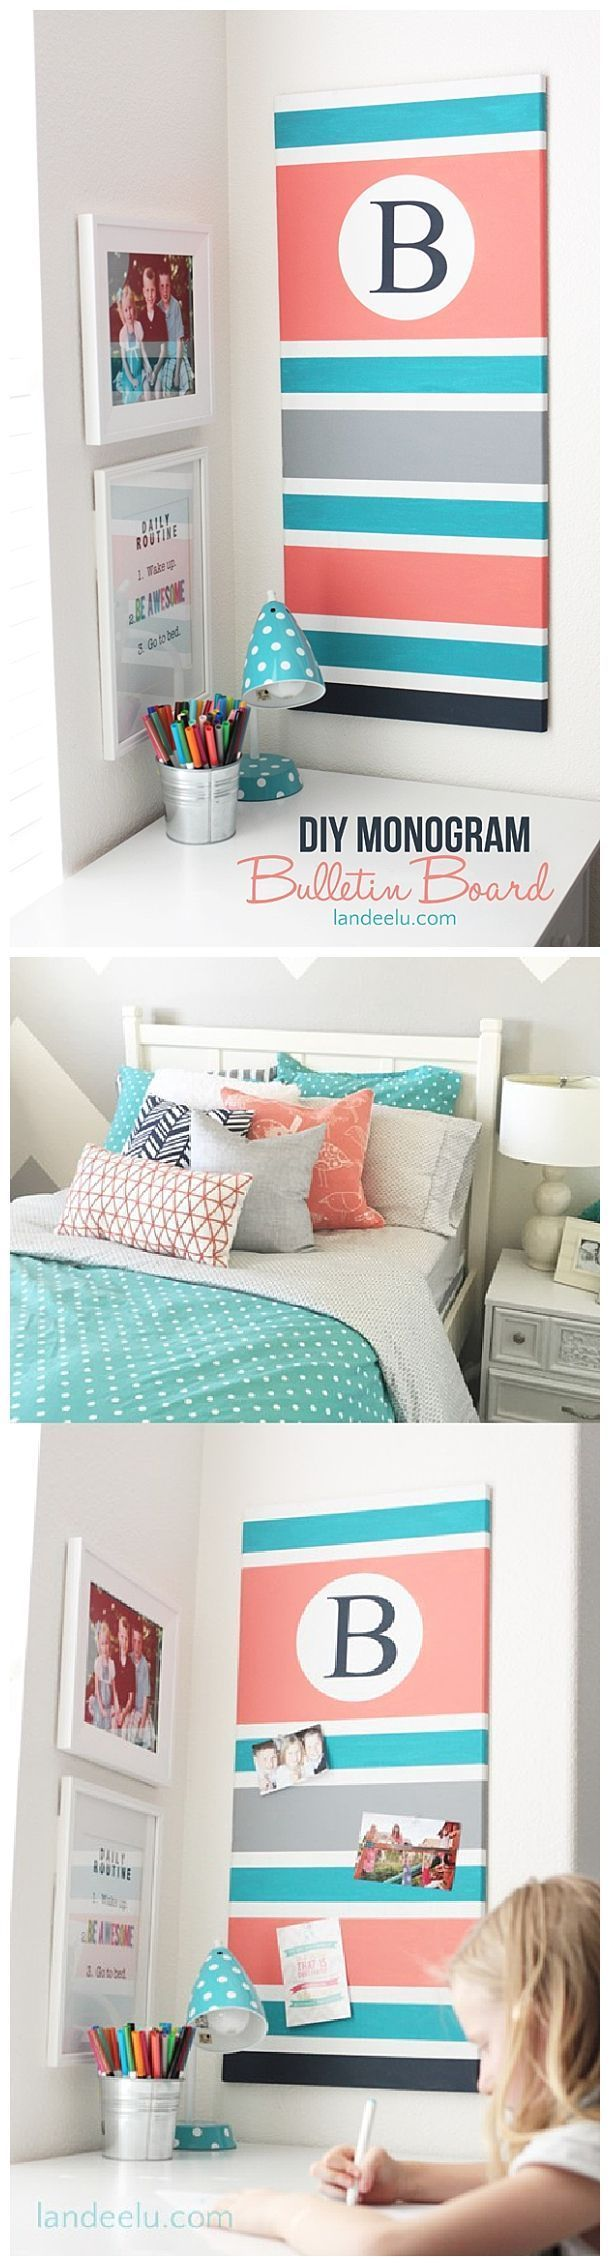 595 best easy diy and craft projects images on pinterest craft diy monogram bulletin board solutioingenieria Image collections